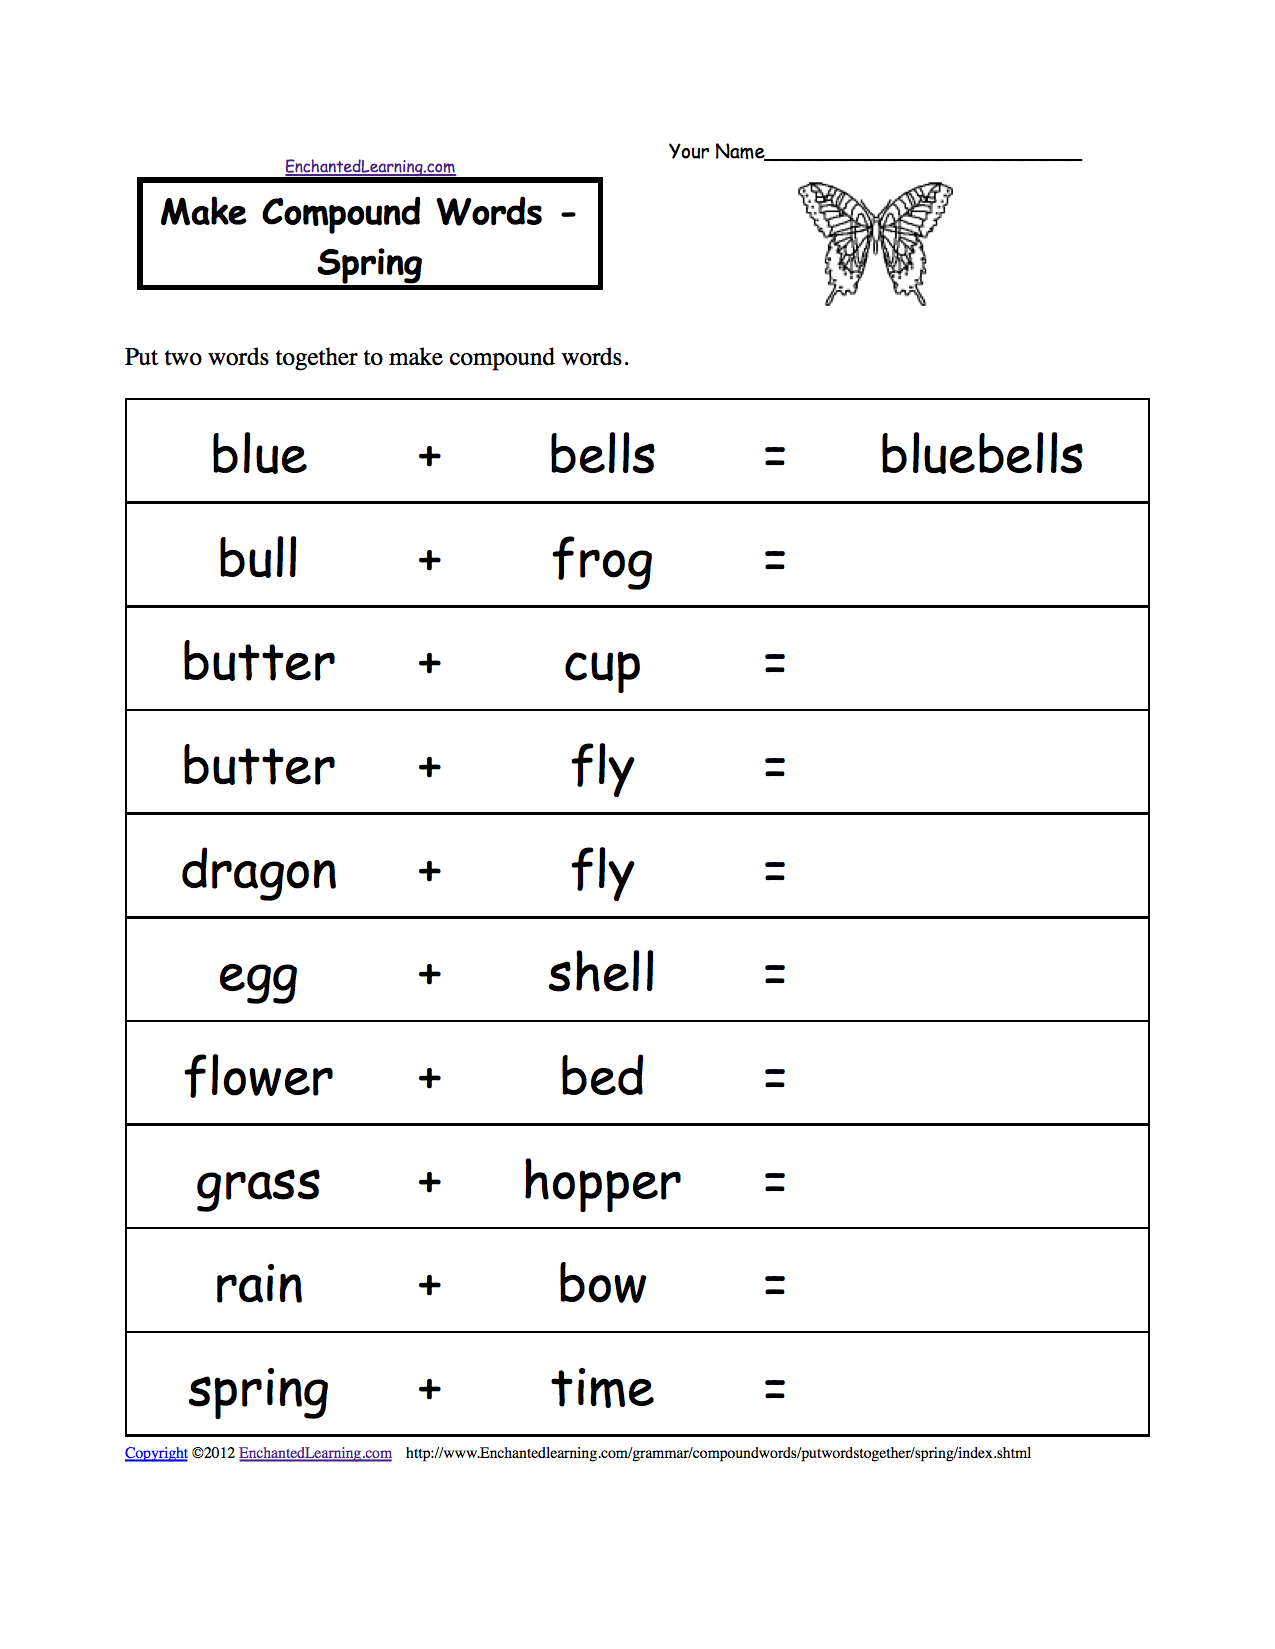 Worksheet Grammar Printable Worksheets make compound words printable worksheets enchantedlearning com words